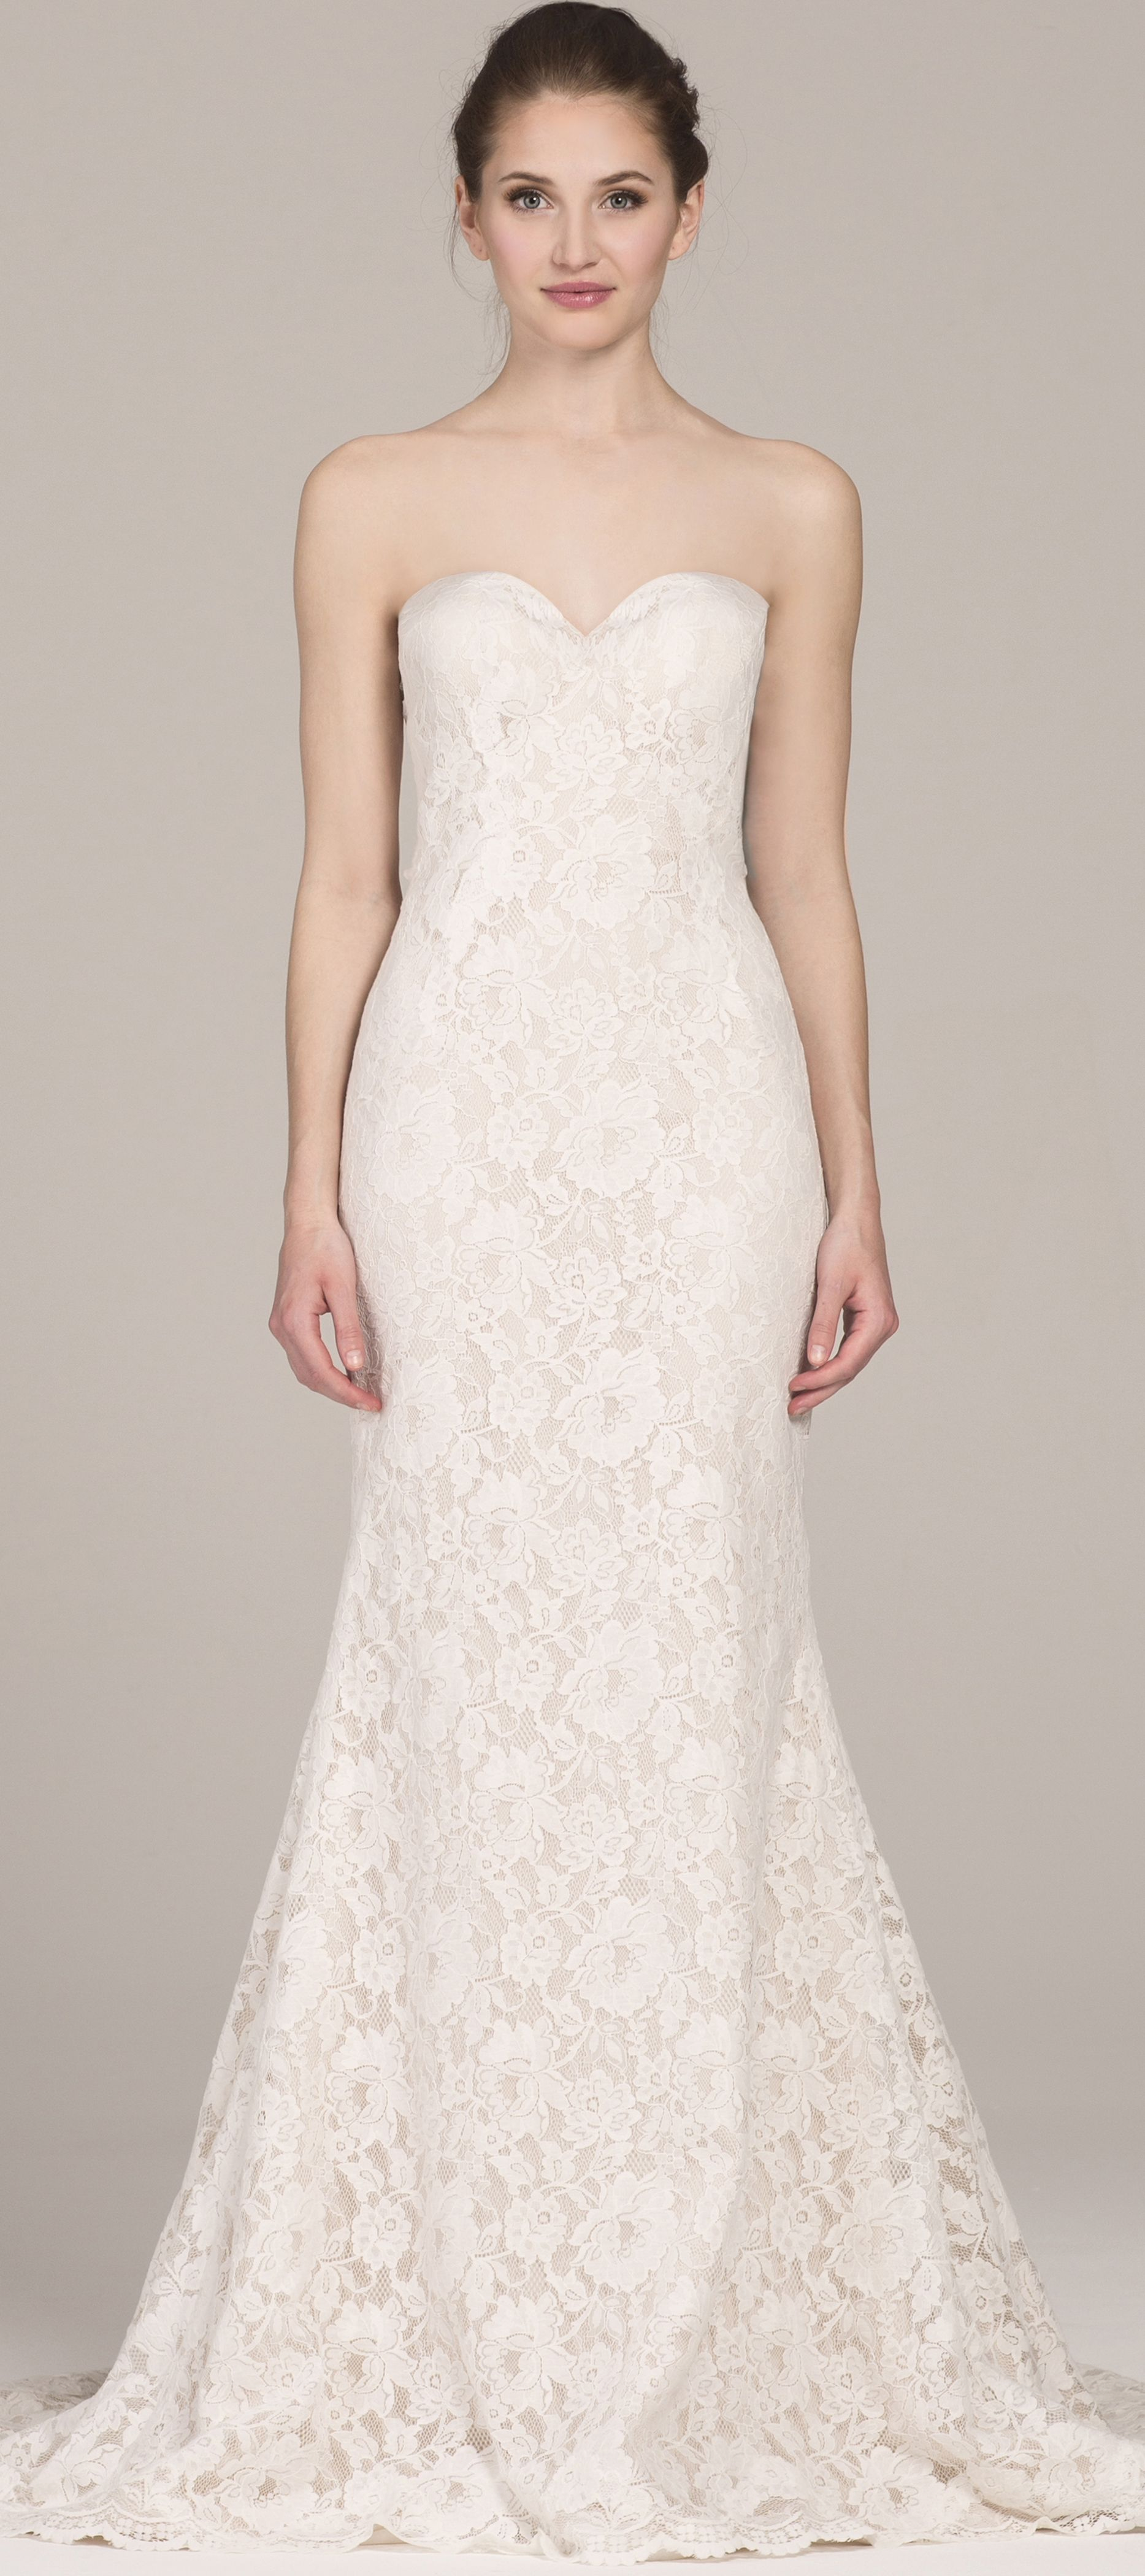 The mariana gown strapless lace wedding dress with cutout open